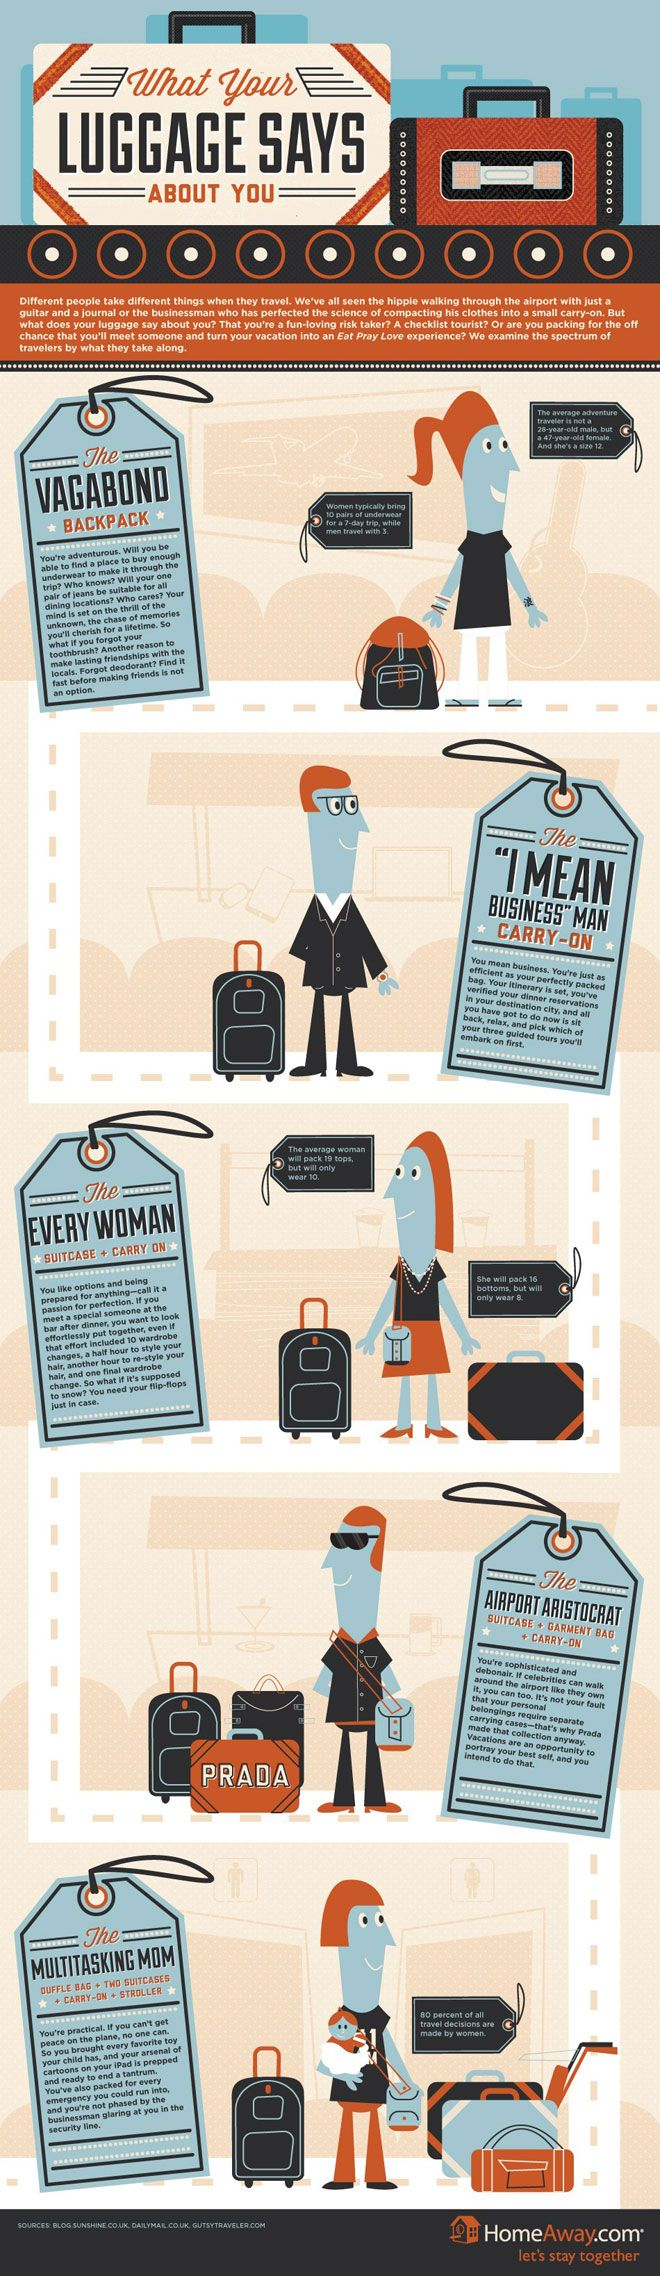 What your luggage says about you. http://www.carryology.com